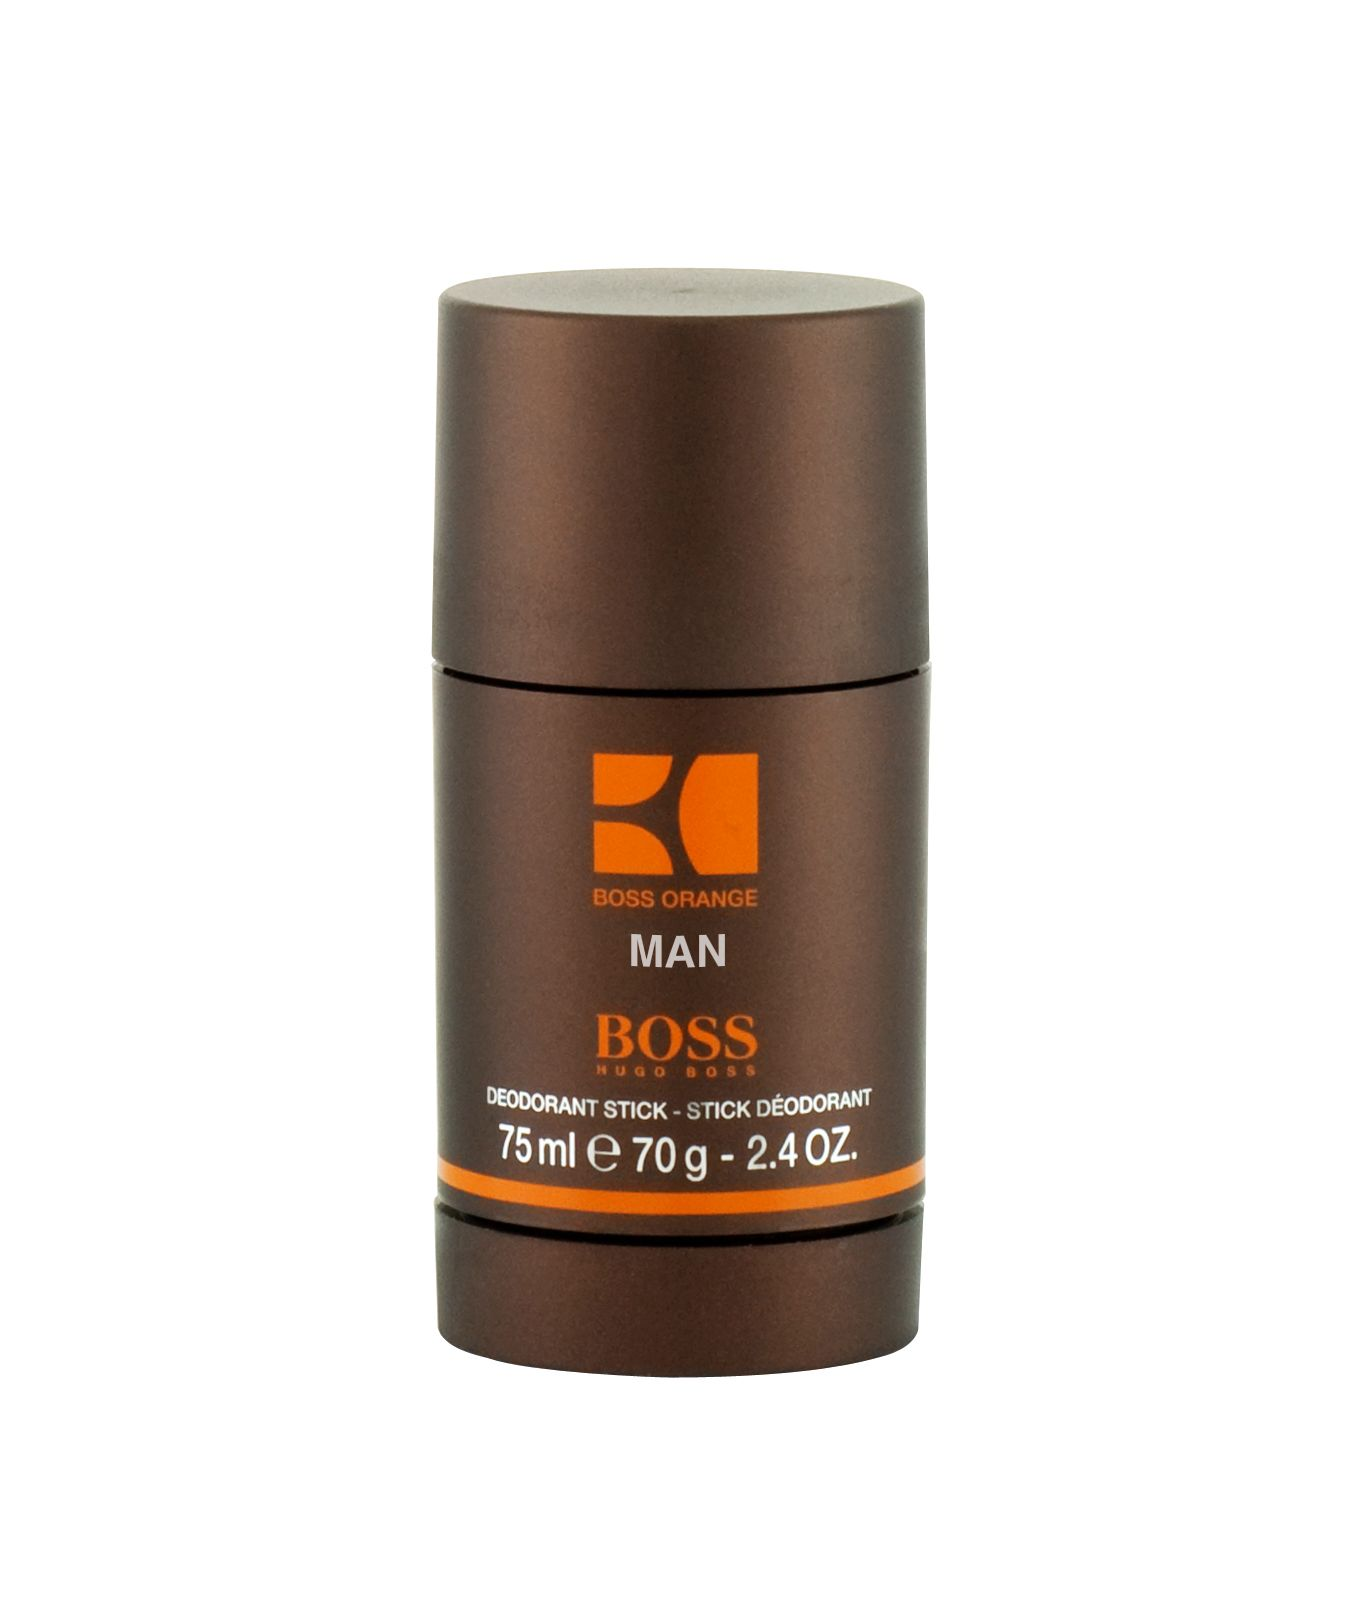 Boss Orange Man Deodorant